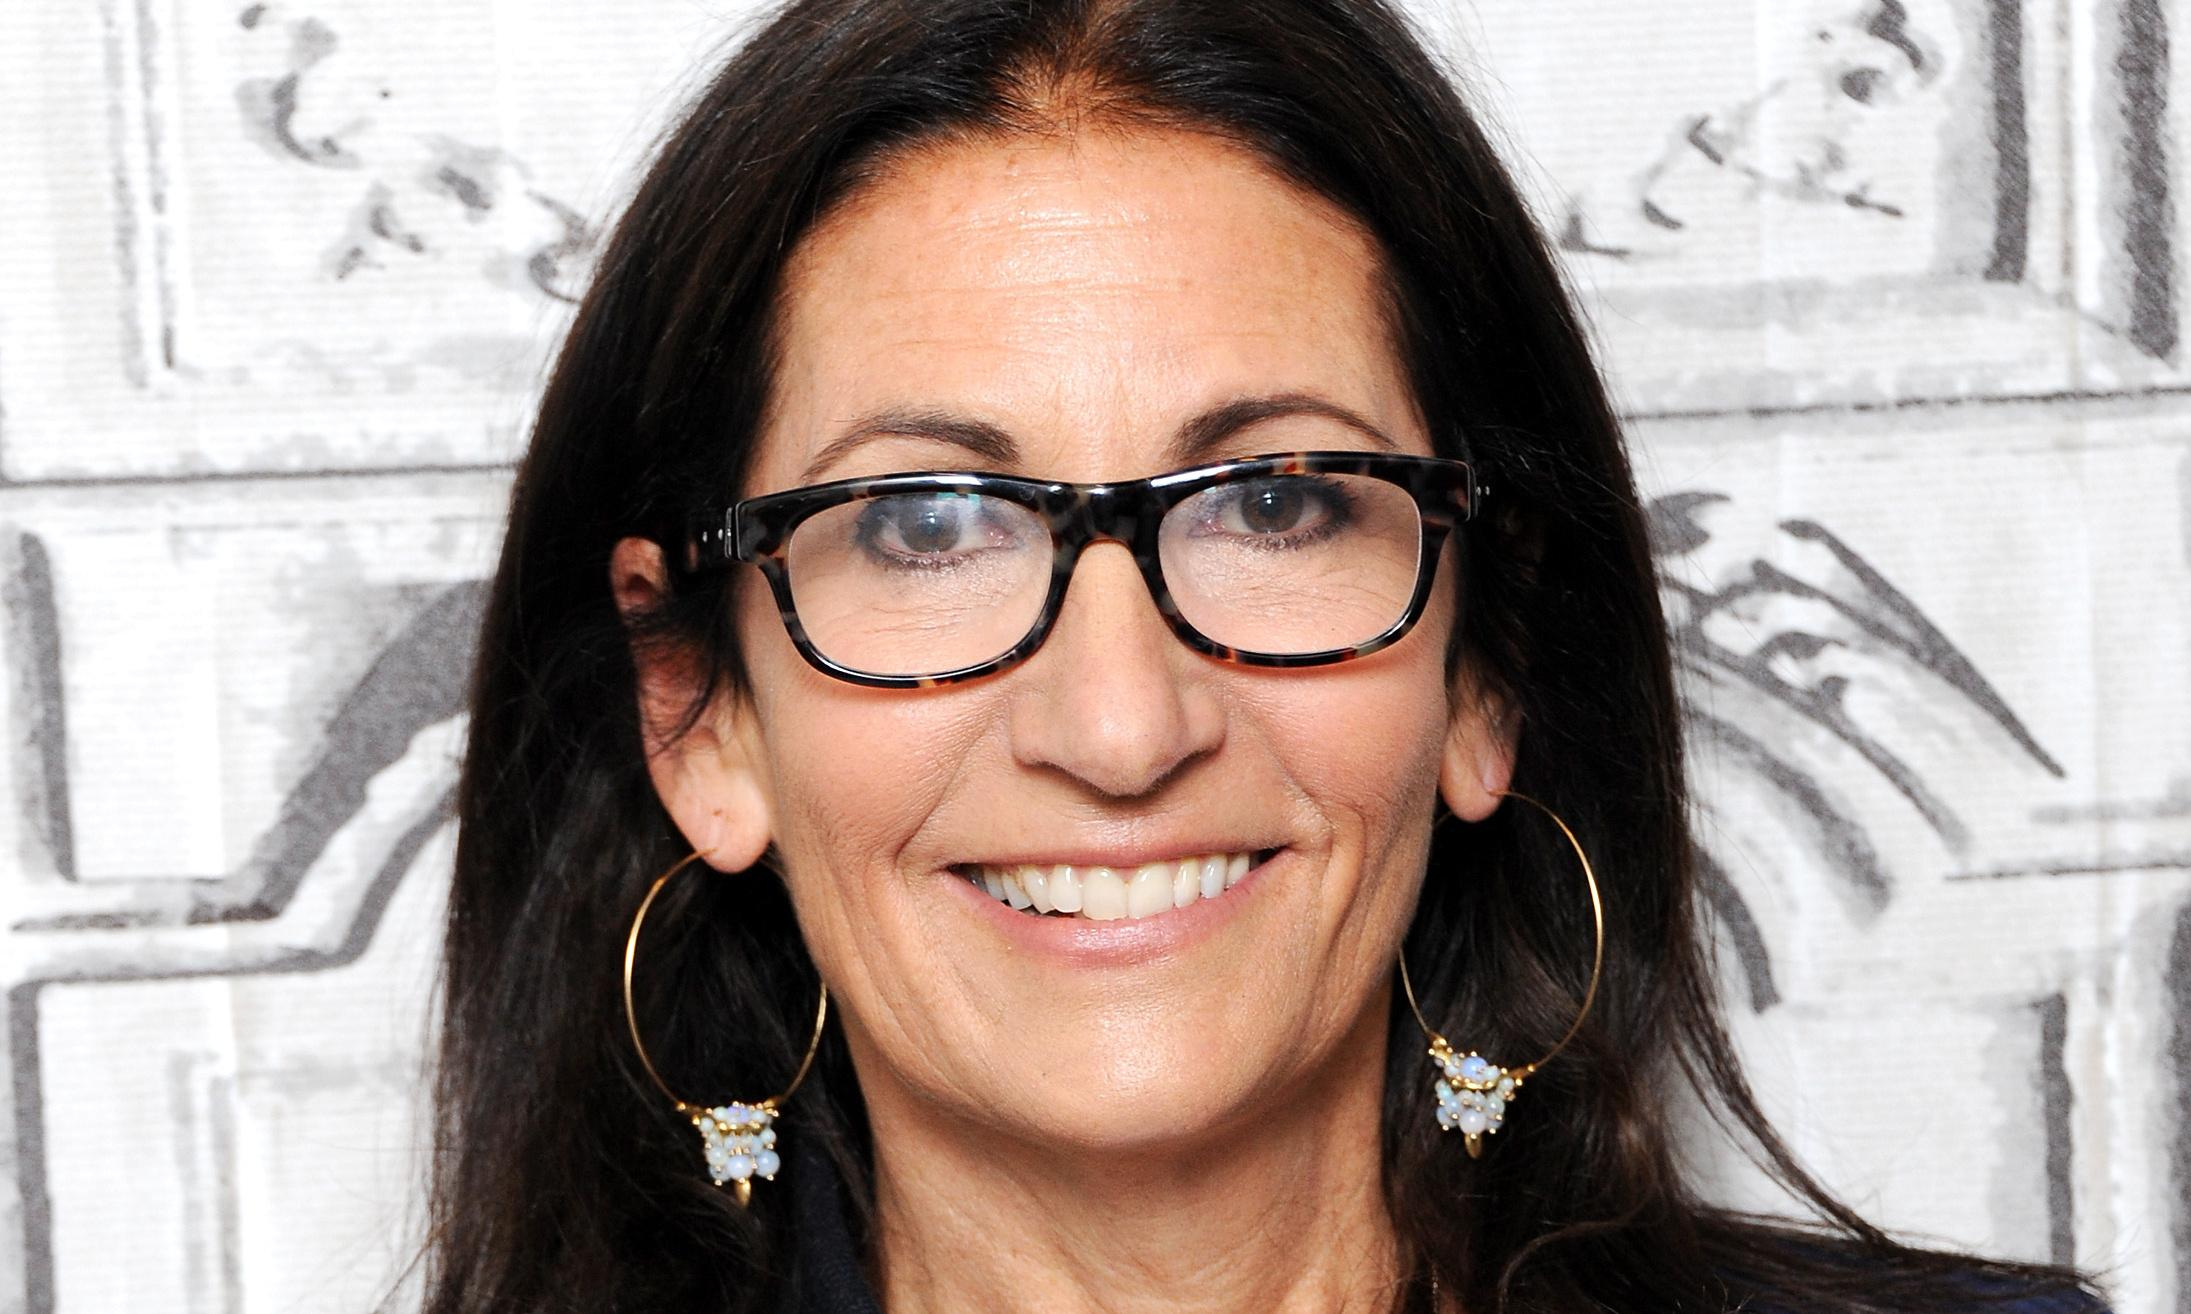 Sunday with Bobbi Brown: 'I head to bed long before I'm tired'